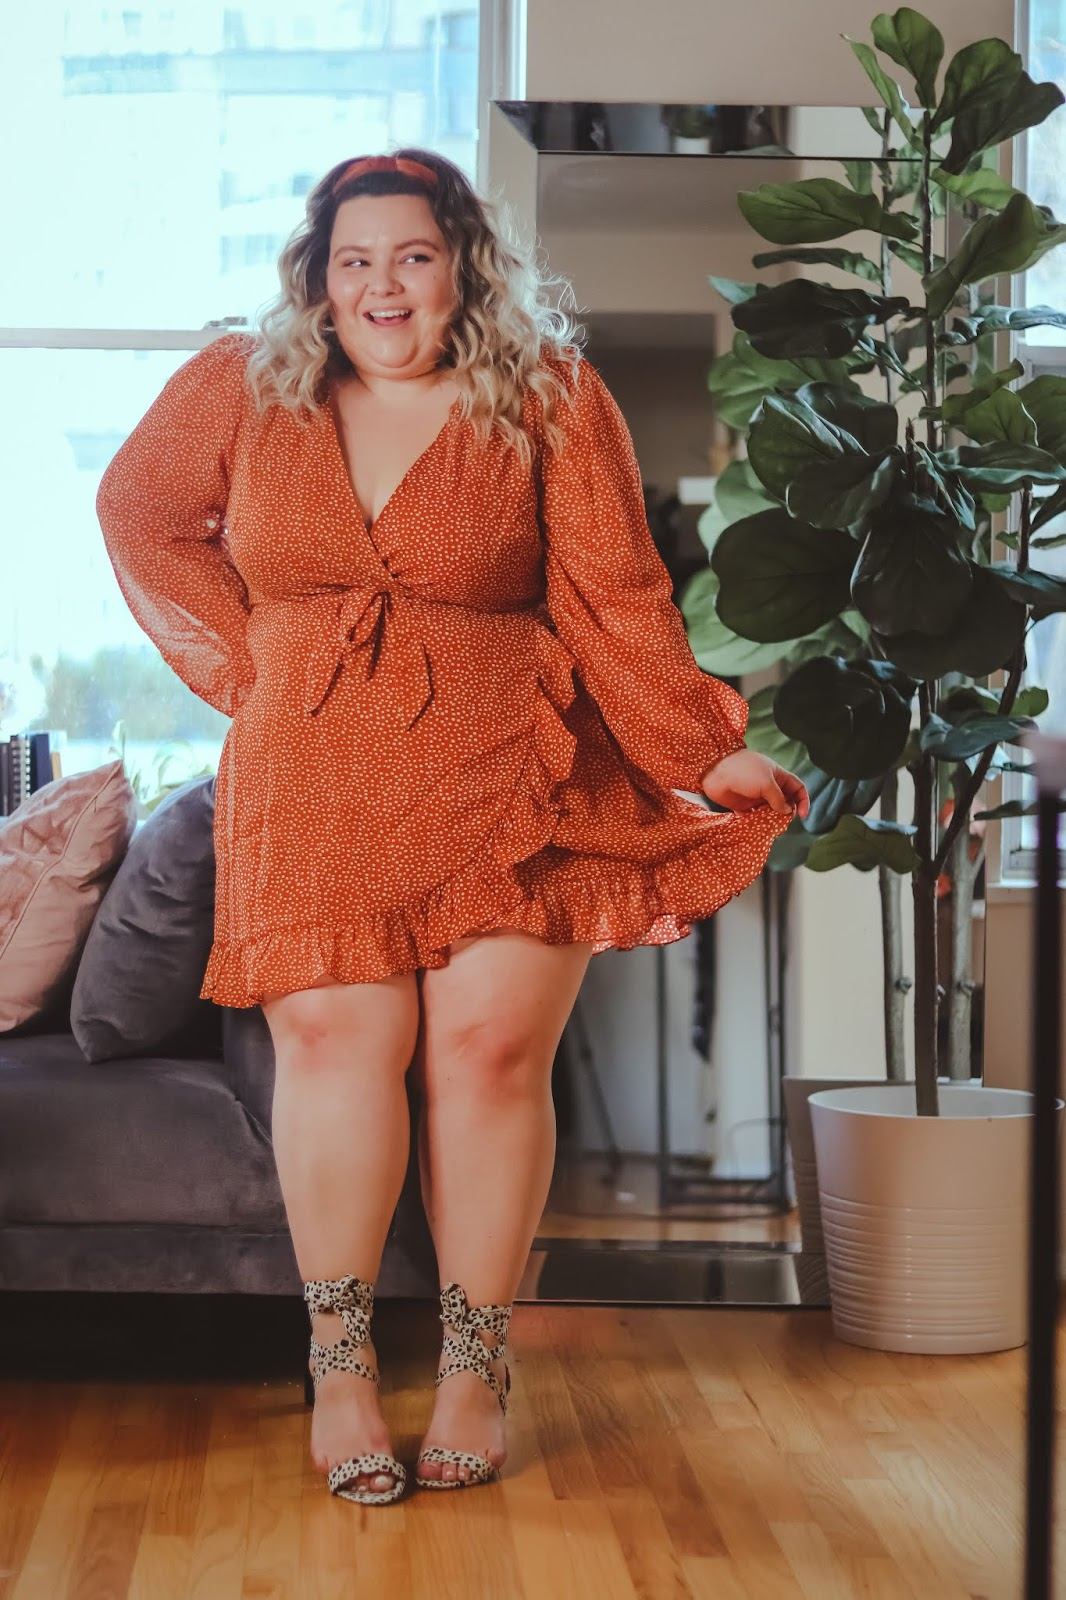 Chicago Plus Size Petite Fashion Blogger, influencer, YouTuber, and model Natalie Craig, of Natalie in the City, shares her latest work from home outfit Adore Me's ready to wear ruffle mini dress.